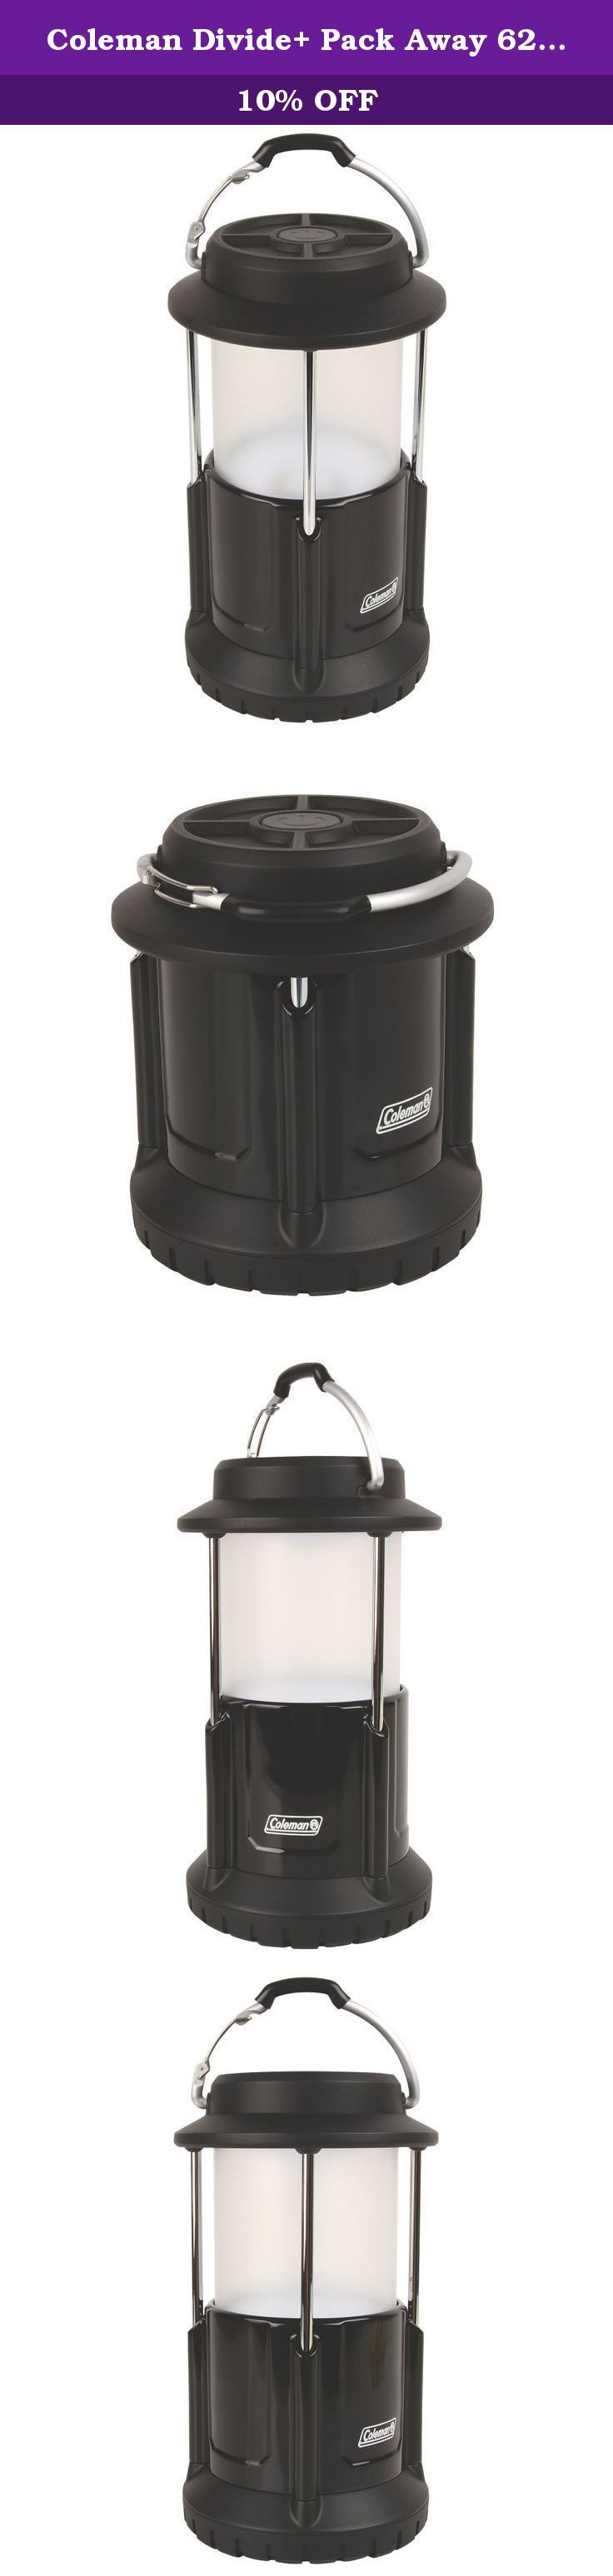 Coleman Divide+ Pack Away 625 lm LED Lantern with Battery Lock. Grab the power of a full-size lantern in the palm of your hand with the Coleman Divide+ pack-away 625L LED lantern. When you're not using it, this lantern collapses to half its size for compact storage. In addition, its battery lock system stops battery drain, so you'll have the power you need when you need it most. On a normal lantern, there is typically some residual drain as long as the battery is connected in the circuit...